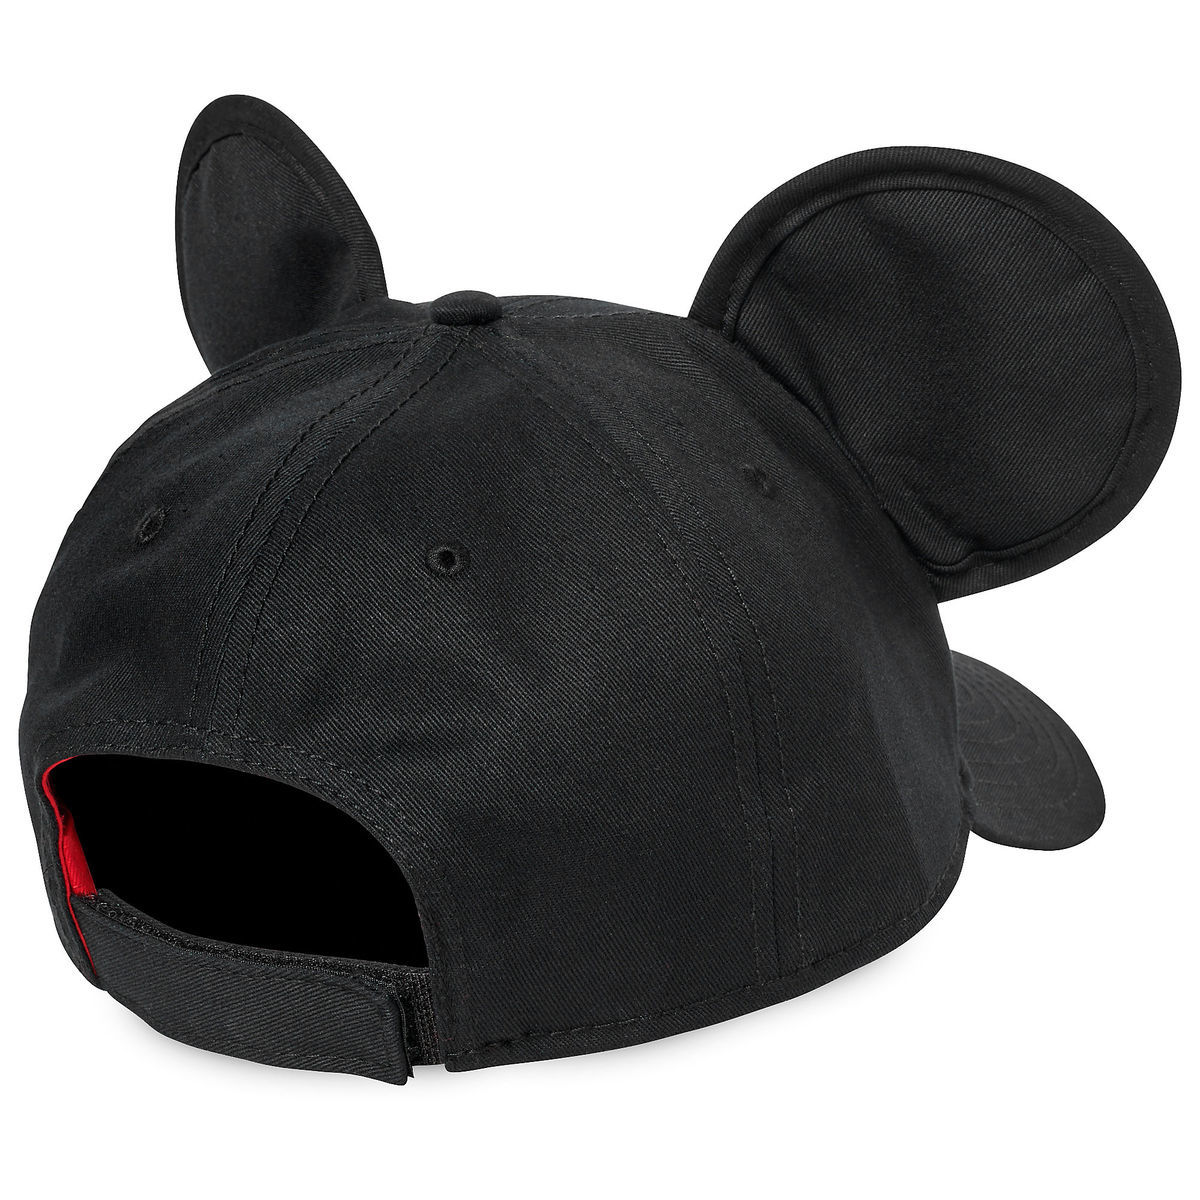 Product Image of Mickey Mouse Baseball Ear Cap for Adults   3 597c3414ad4b